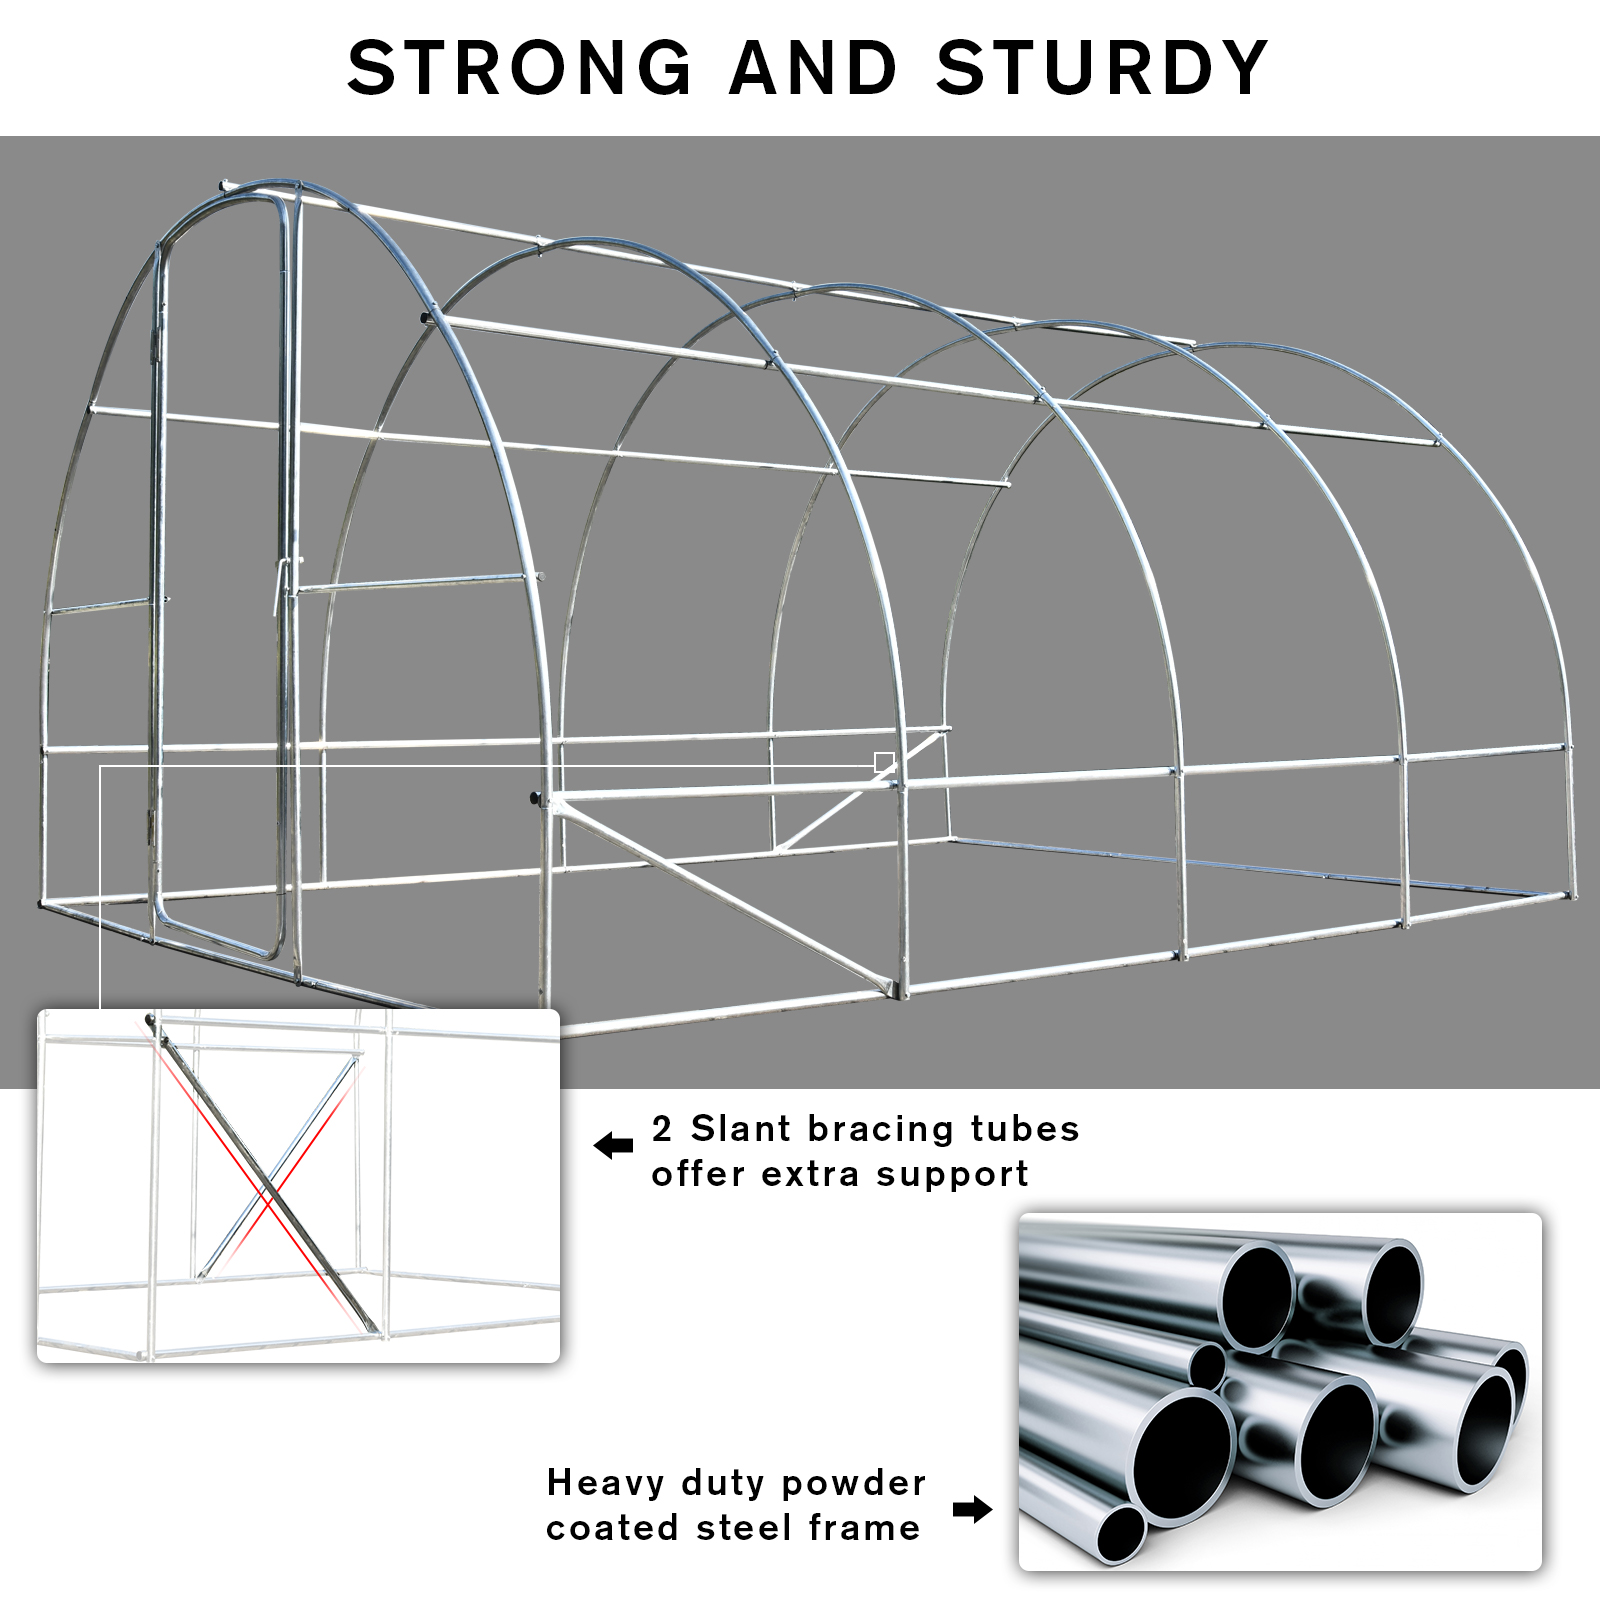 400L x 300W x 200Hcm Outsunny Walk-in Tunnel Greenhouse Garden Planting Shed Clear PE Cover Metal Frame